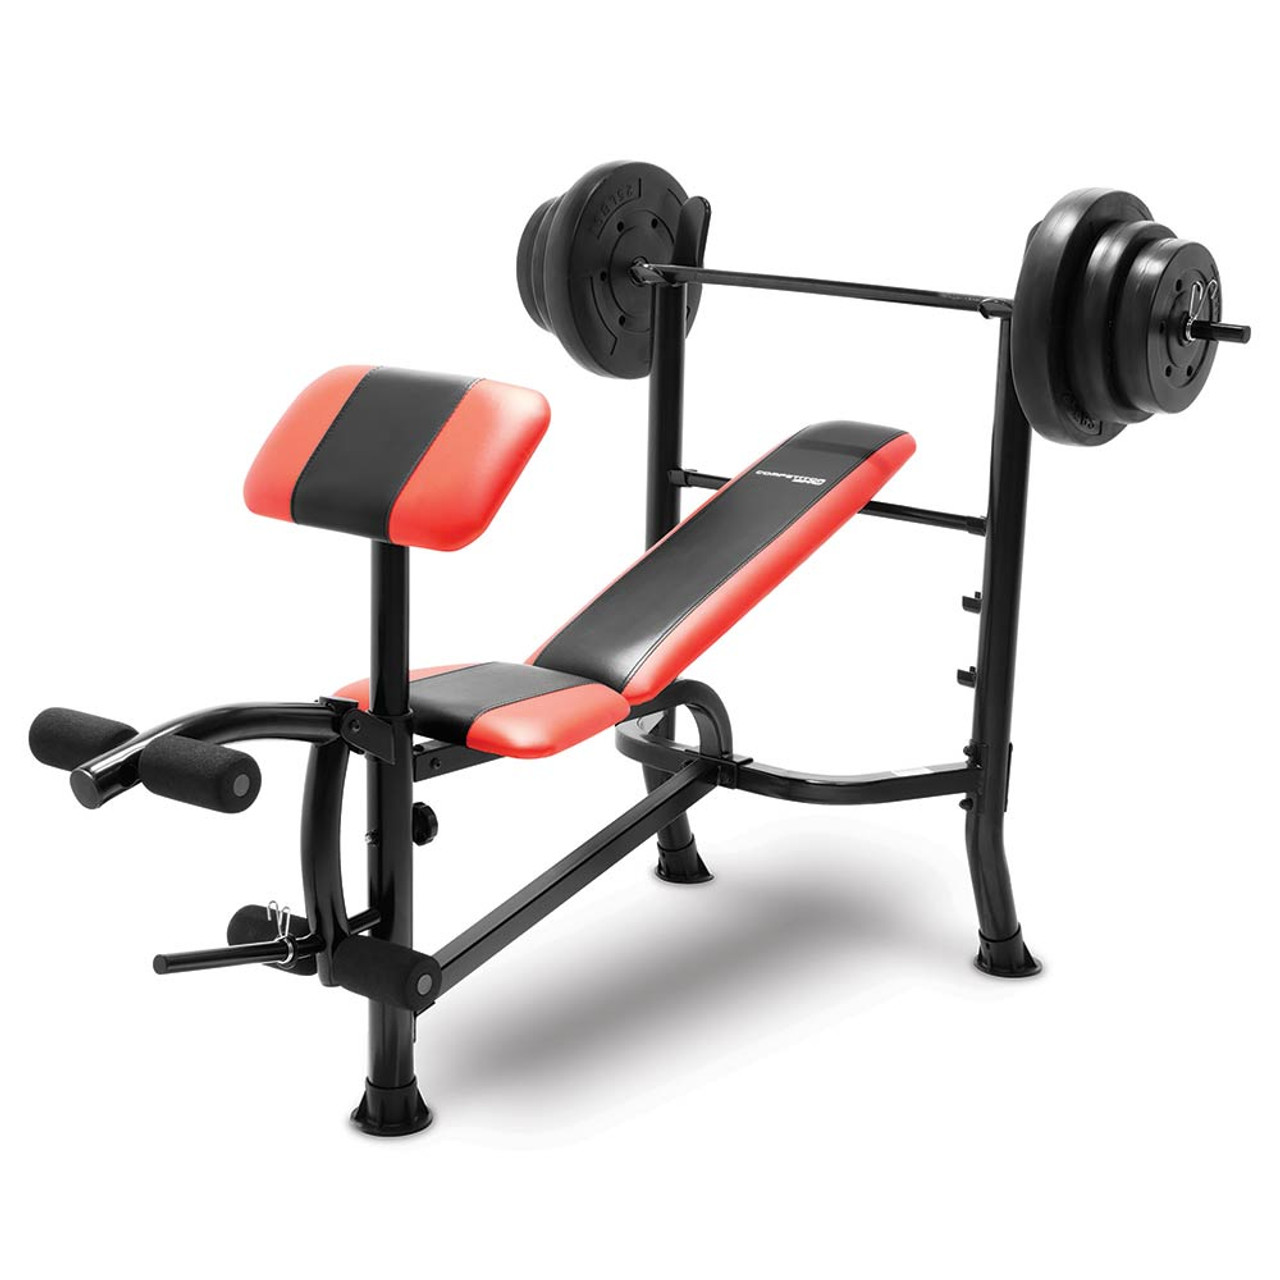 Weight Benches Bench Set For Sale Mesmerizing With Ebay: Competitor Bench 100 Lb. Weight Set CB-2982 Quality Strength